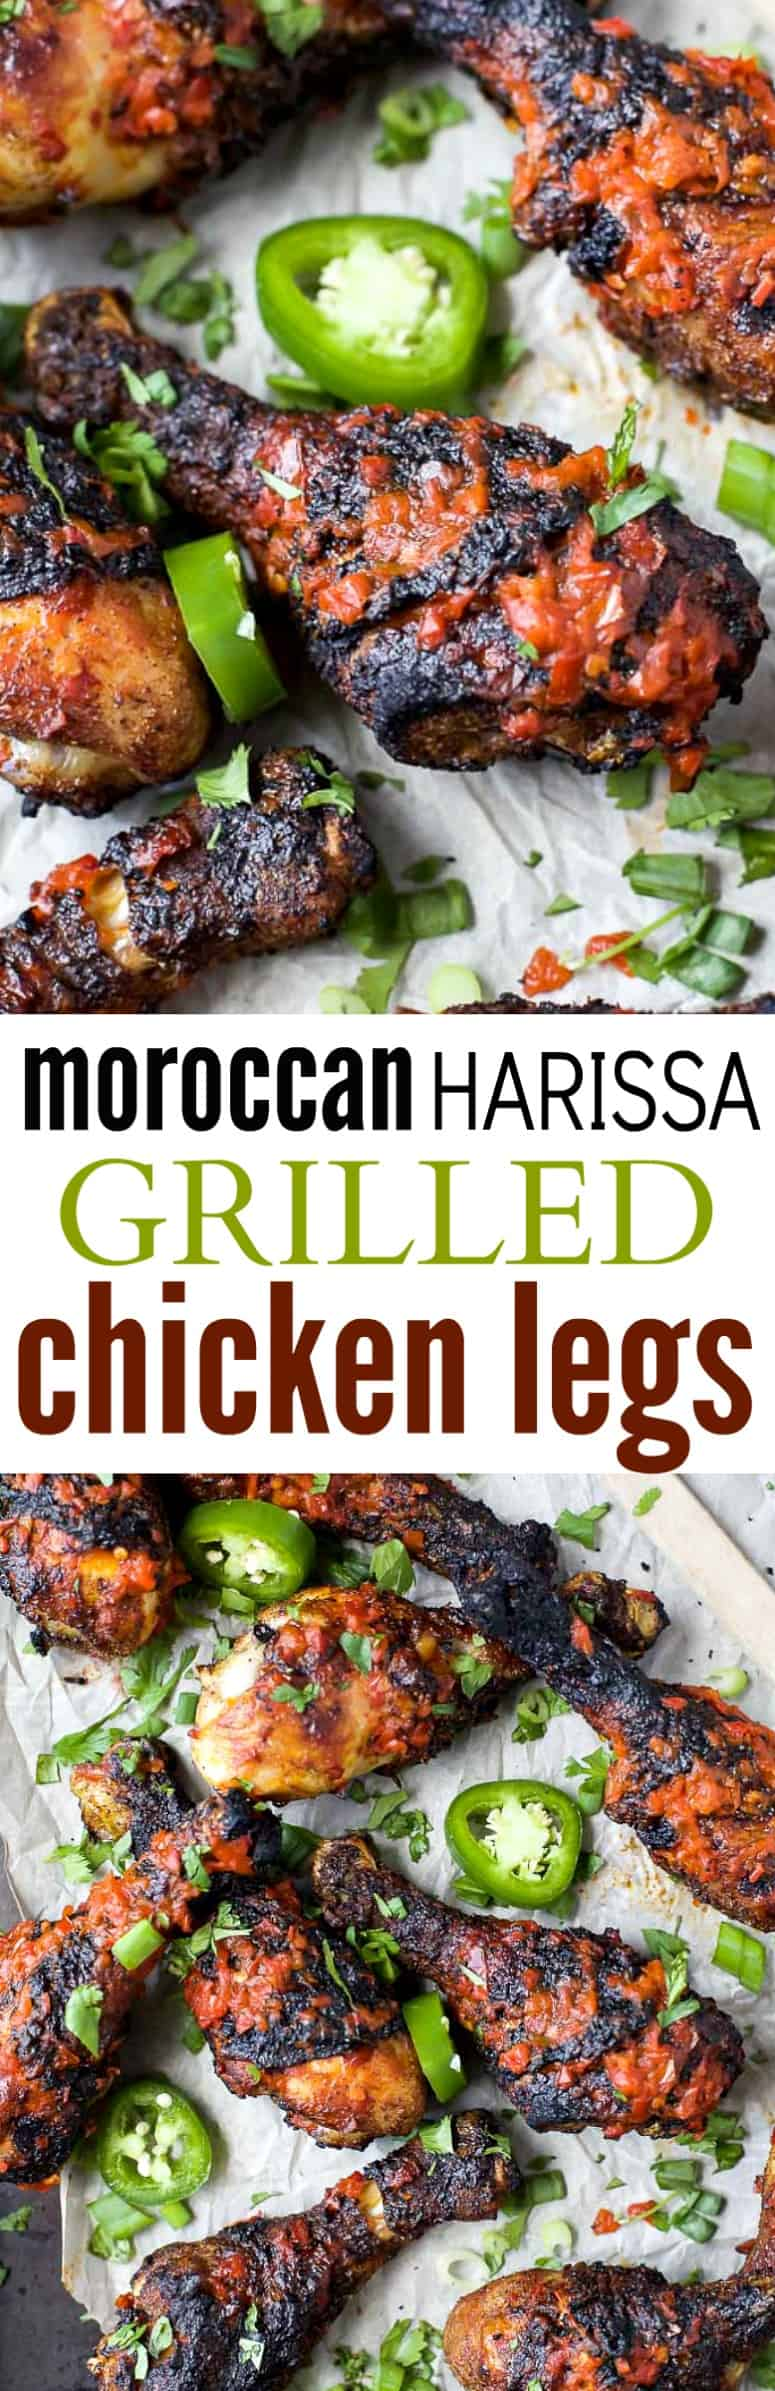 Moroccan Harissa Grilled Chicken Legs the perfect grilling recipe to wow the crowd this summer! | gluten free recipes